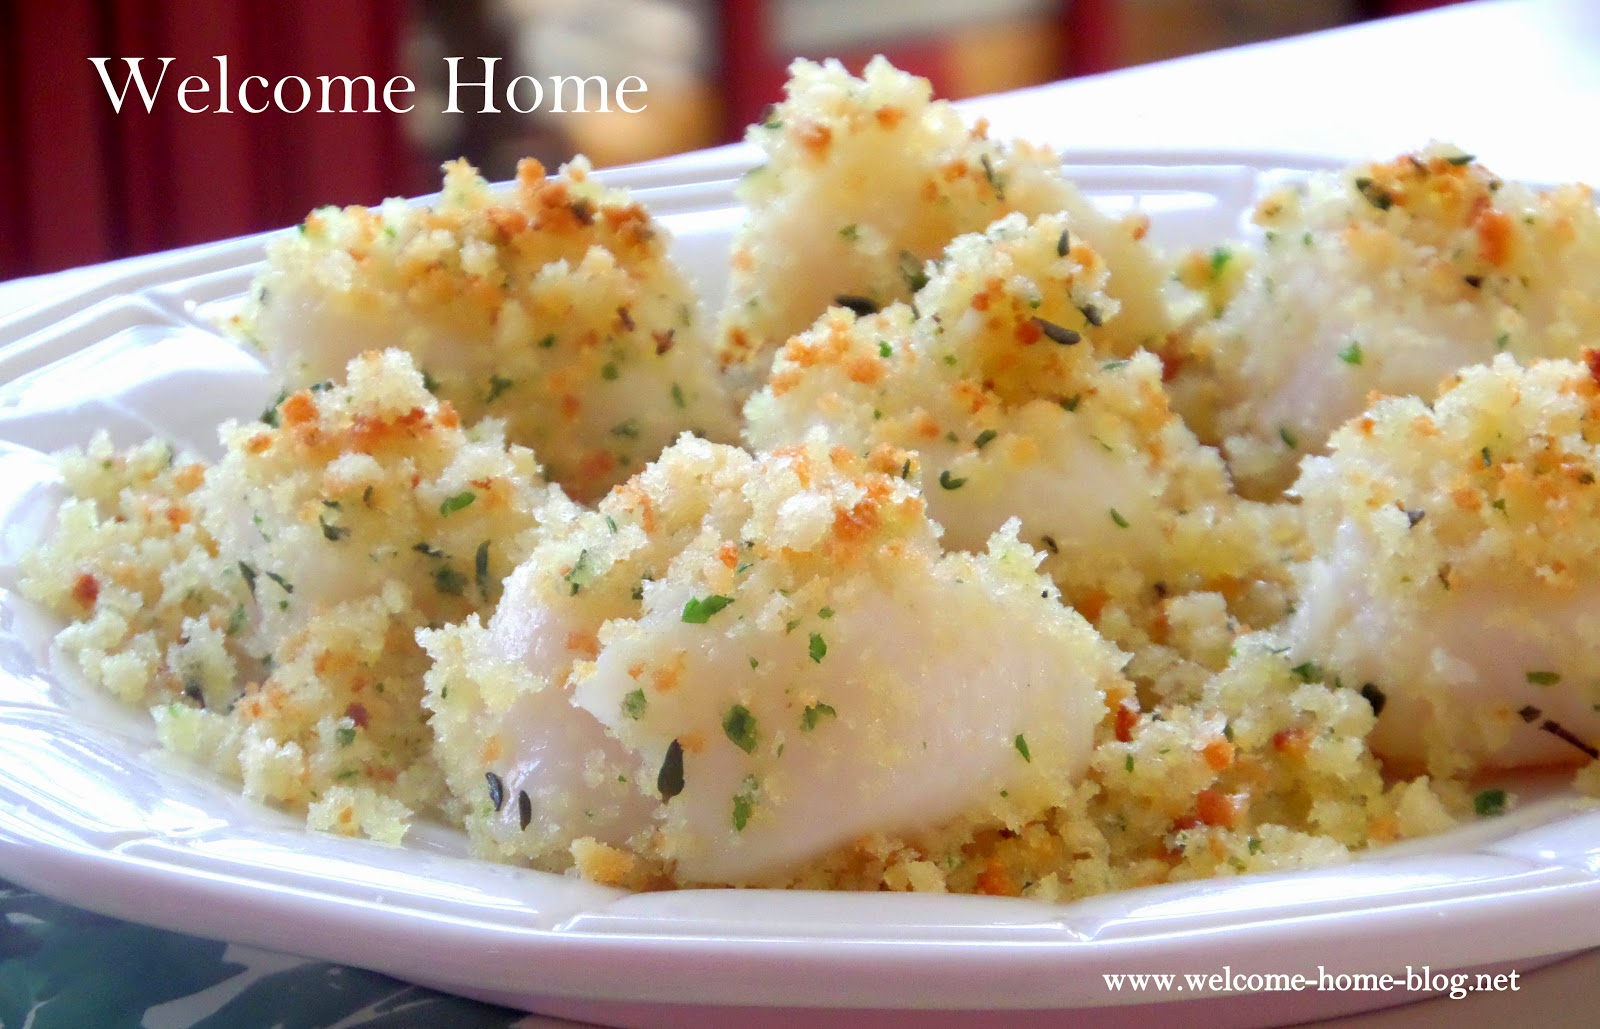 Welcome Home Blog: Baked Panko Scallops (Scallops Al Forno)